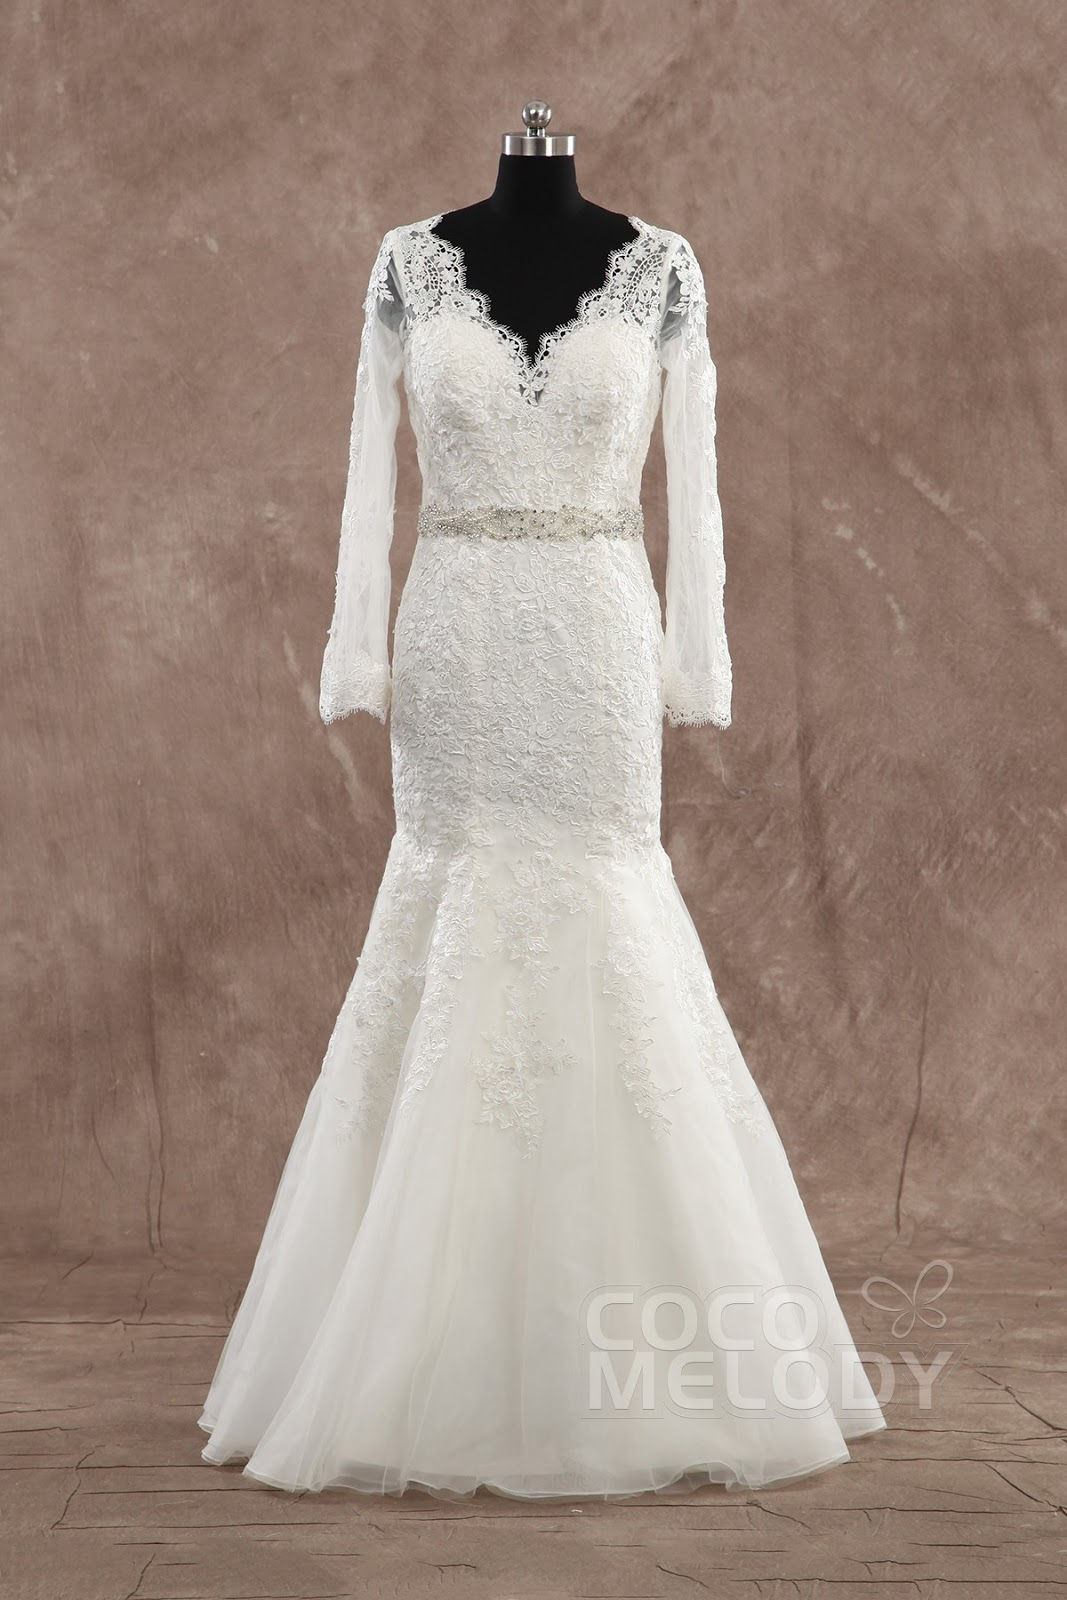 http://www.cocomelody.com/sparkle-trumpet-mermaid-v-neck-dropped-train-lace-ivory-long-sleeve-open-back-wedding-dress-with-sashes-and-appliques-cwat1400c.html